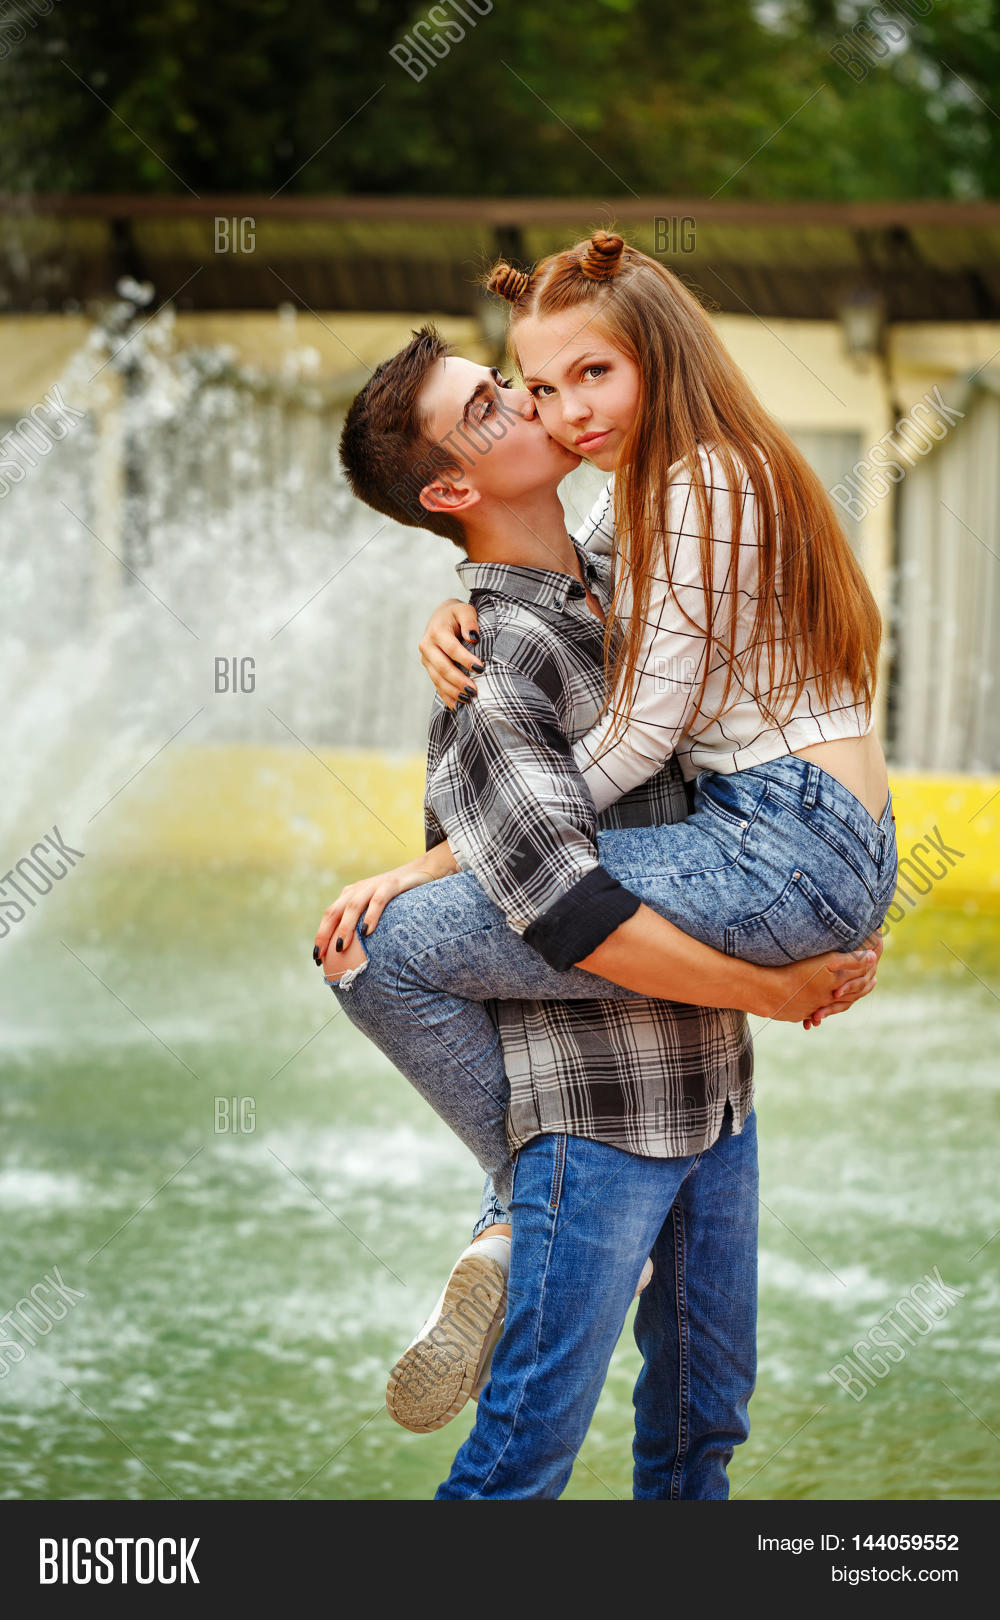 100% free online dating in sunland park 100% free hot springs national park (arkansas) dating site for local single men and women join one of the best american online singles service and meet lonely people to date and chat in hot springs national park(united states.